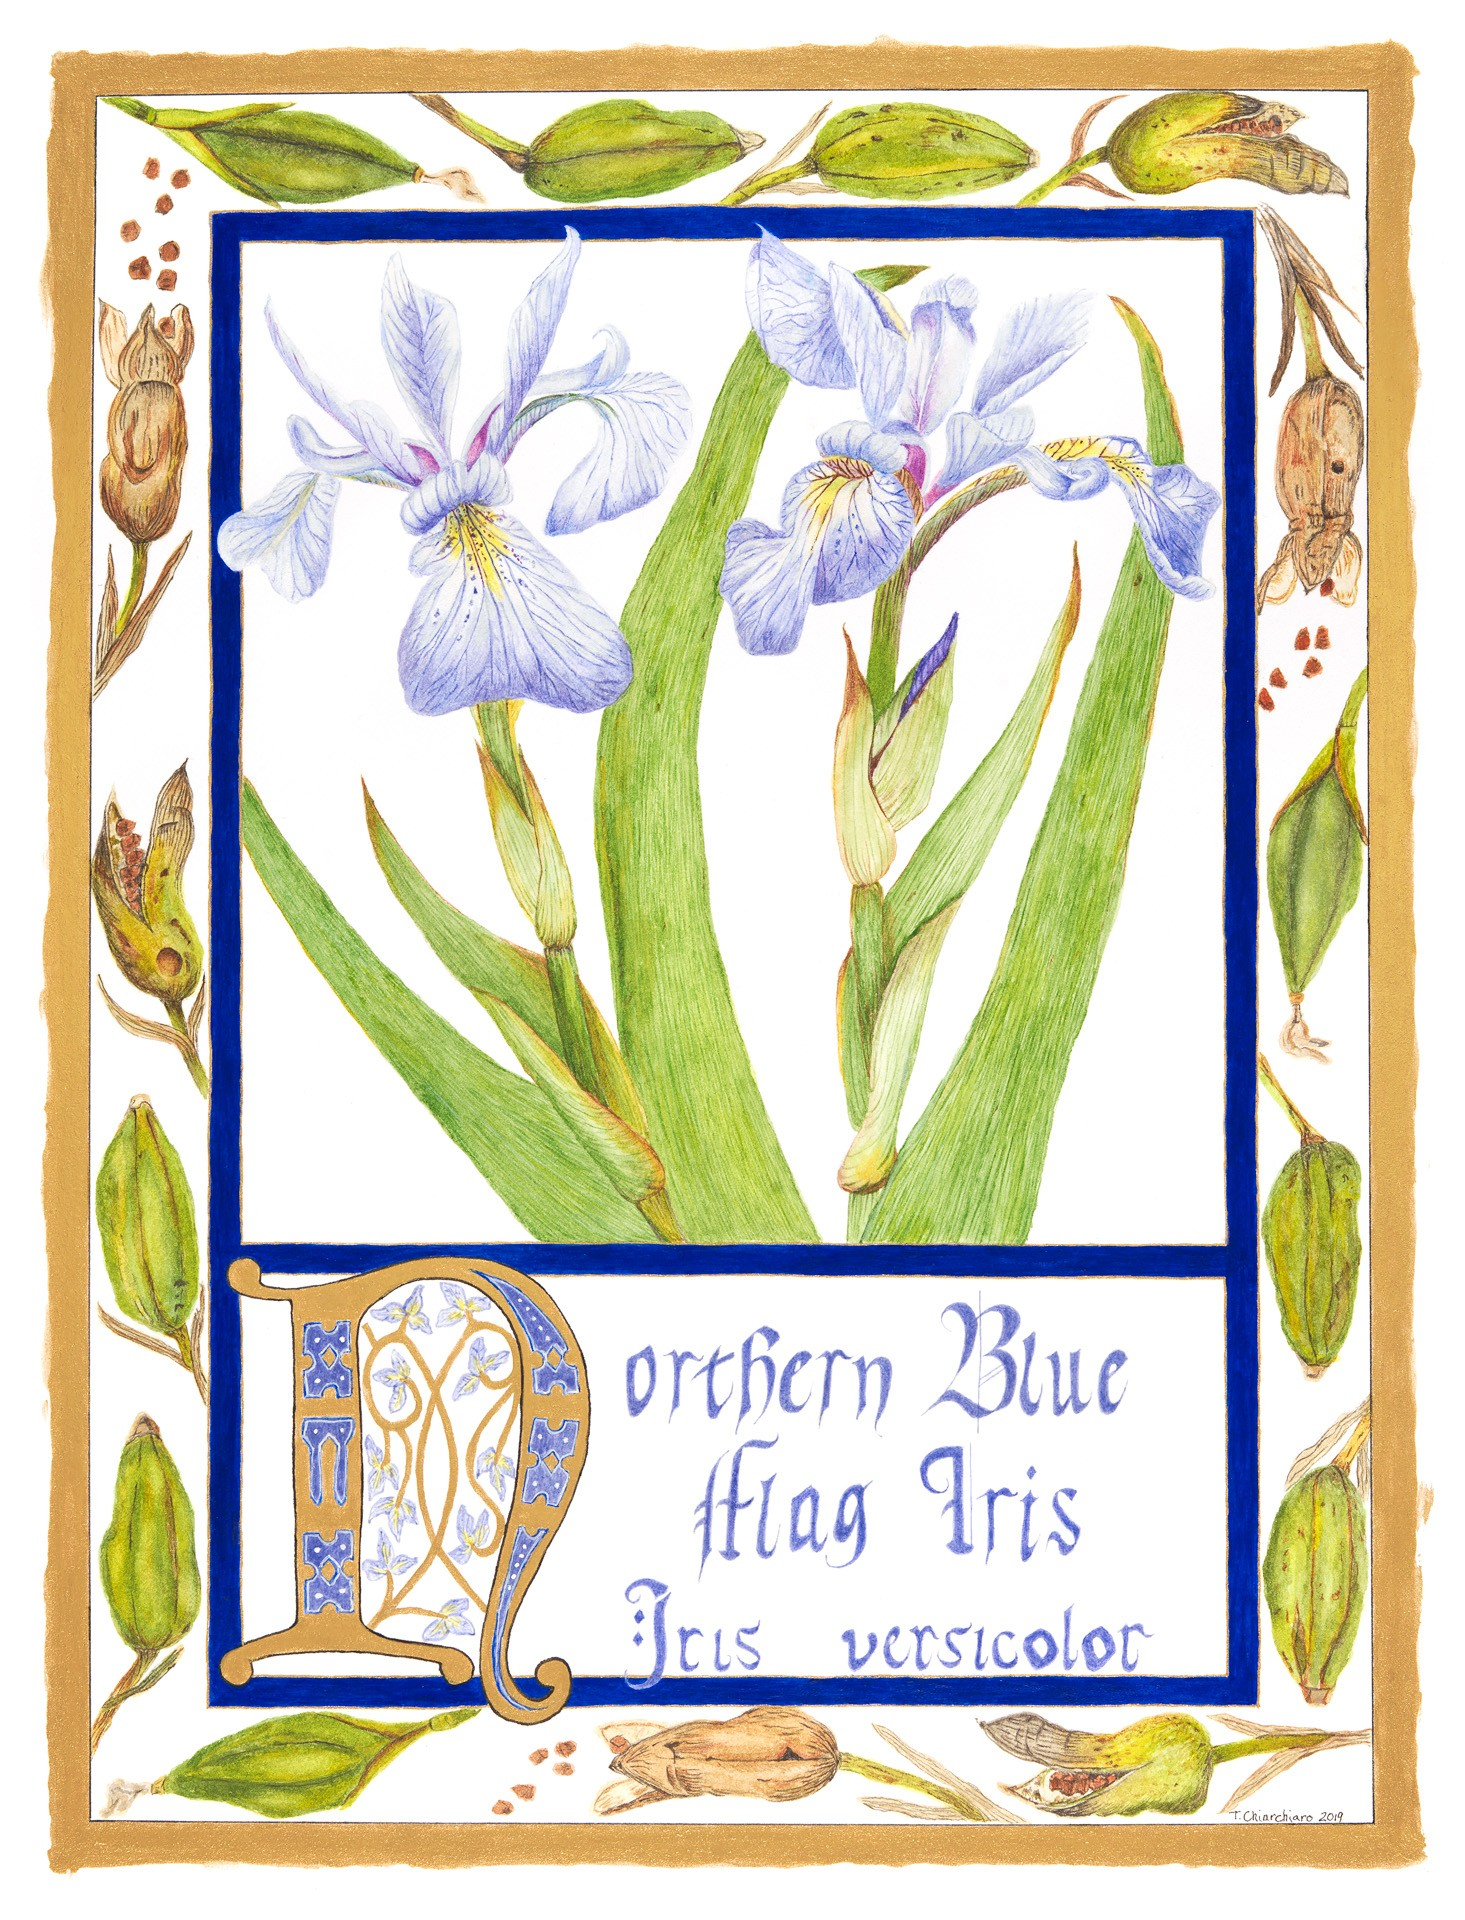 Northern blueflag, Iris versicolor Watercolor and egg tempera by Tena Chiarchiaro